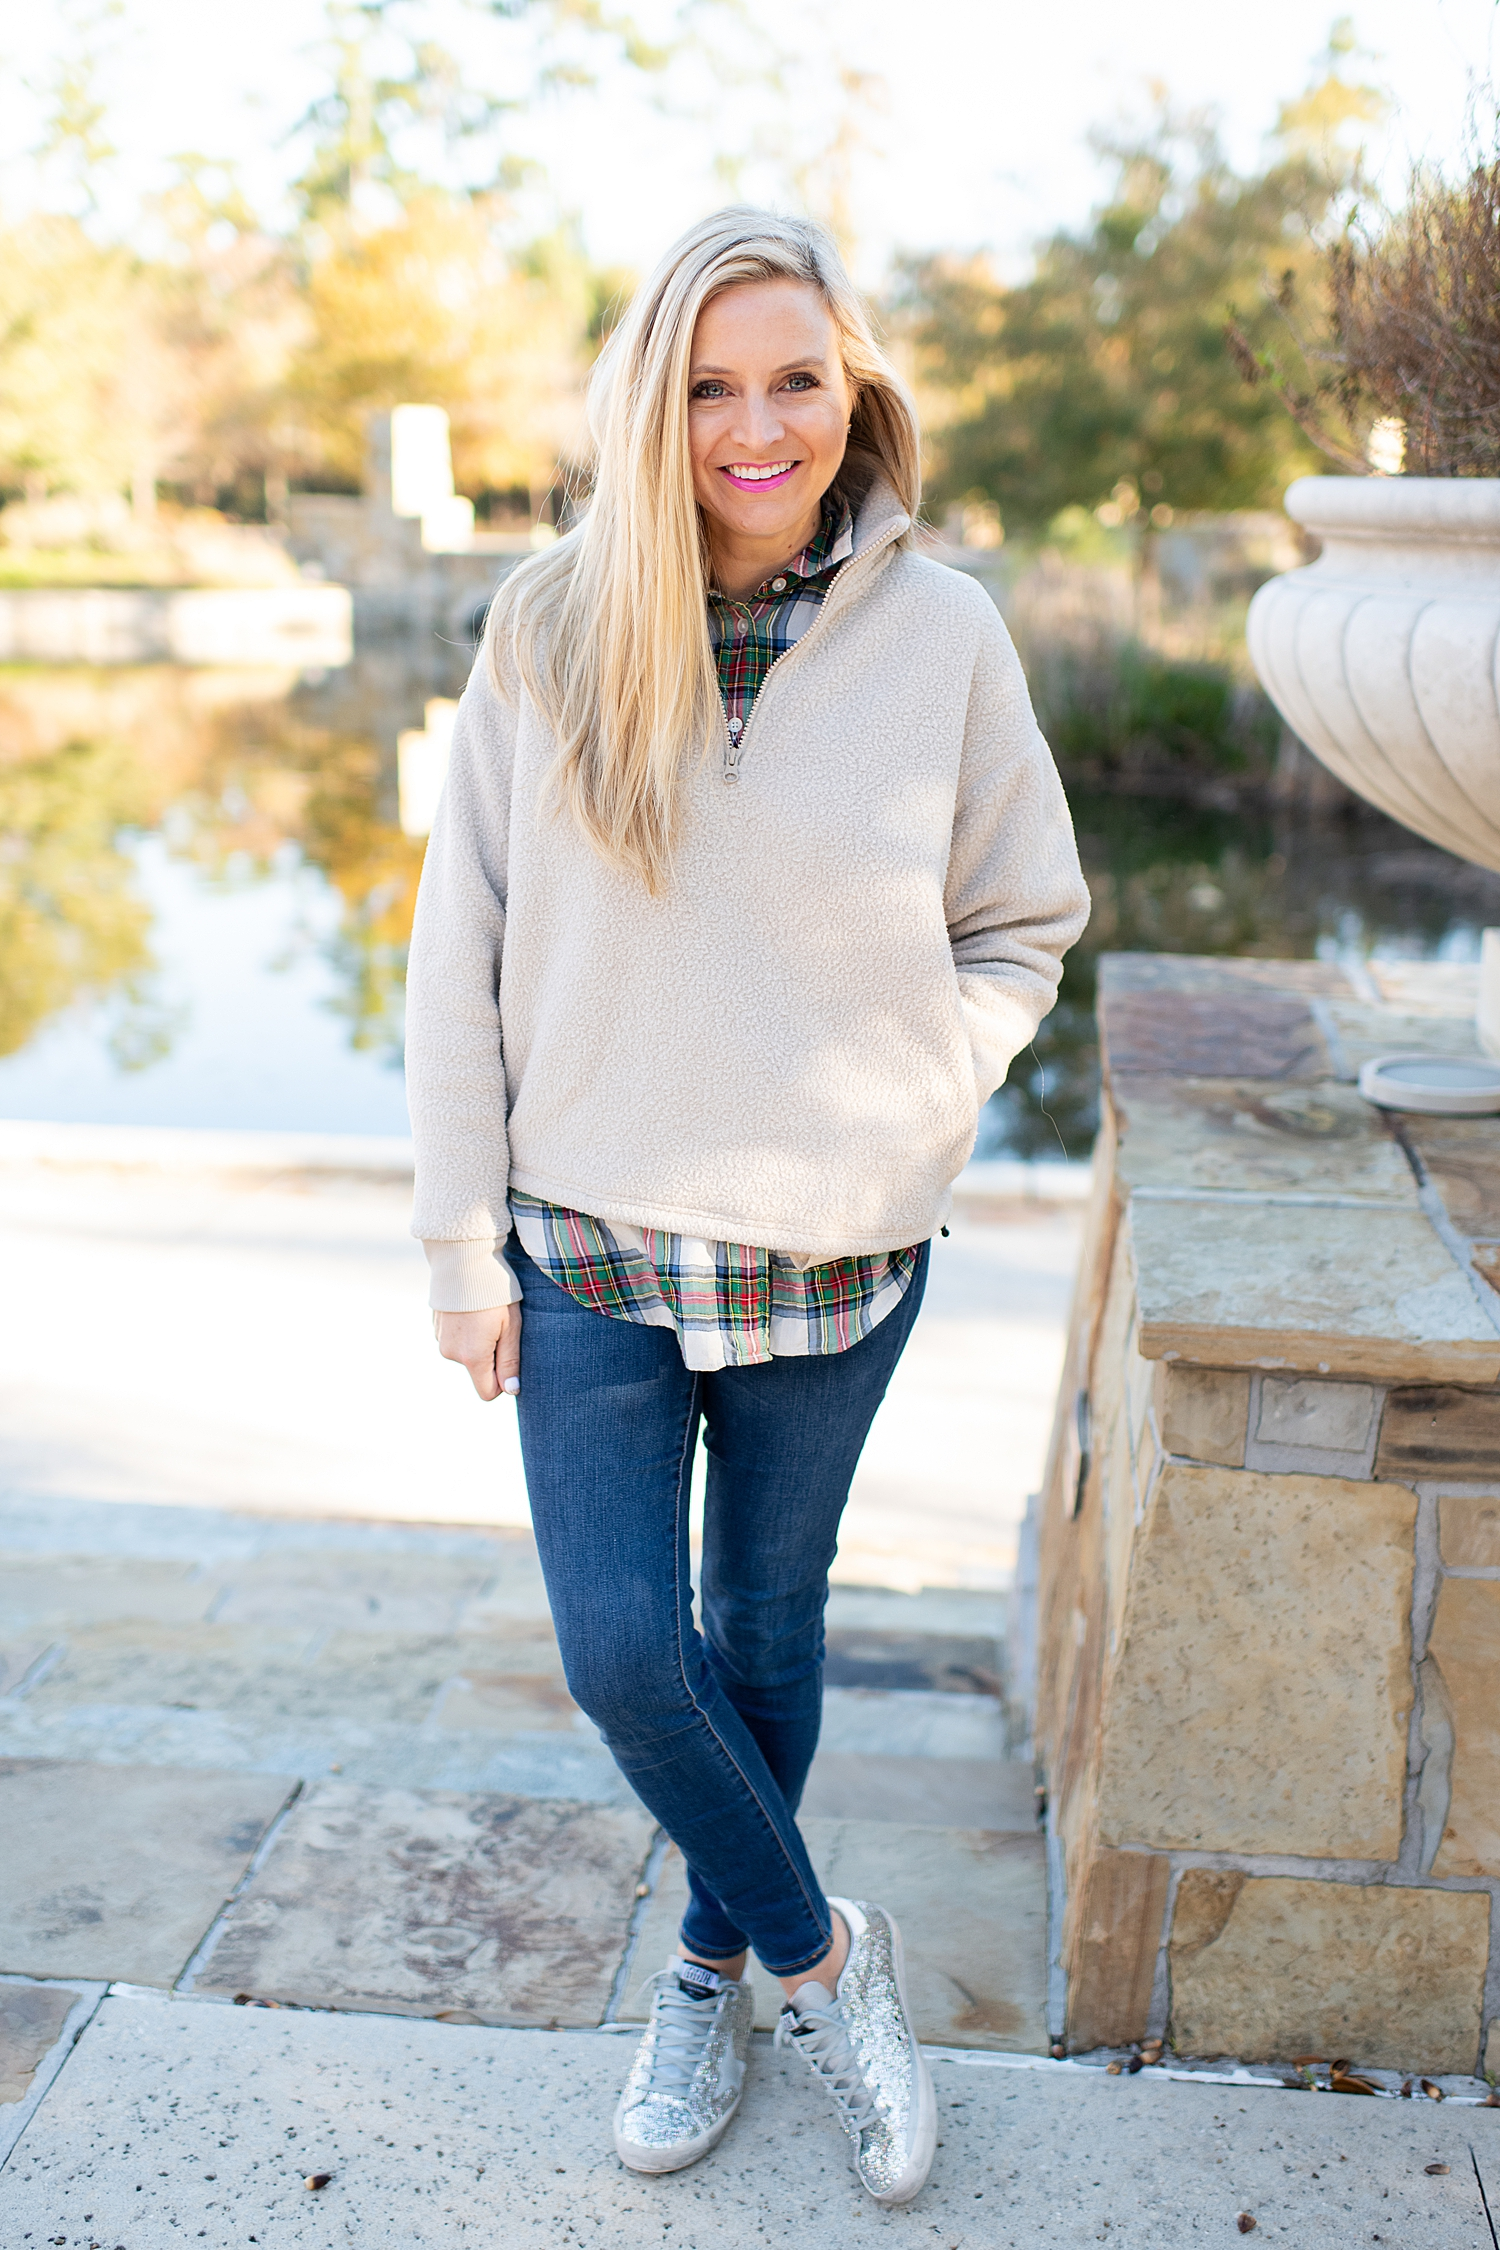 The Best Cozy Gift Ideas featured by top Houston fashion blogger, Fancy Ashley: picture of a blonde woman wearing an Everlane zip fleece, J.Crew tartan shirt, J.Crew skinny jeans and Golden Goose sneakers